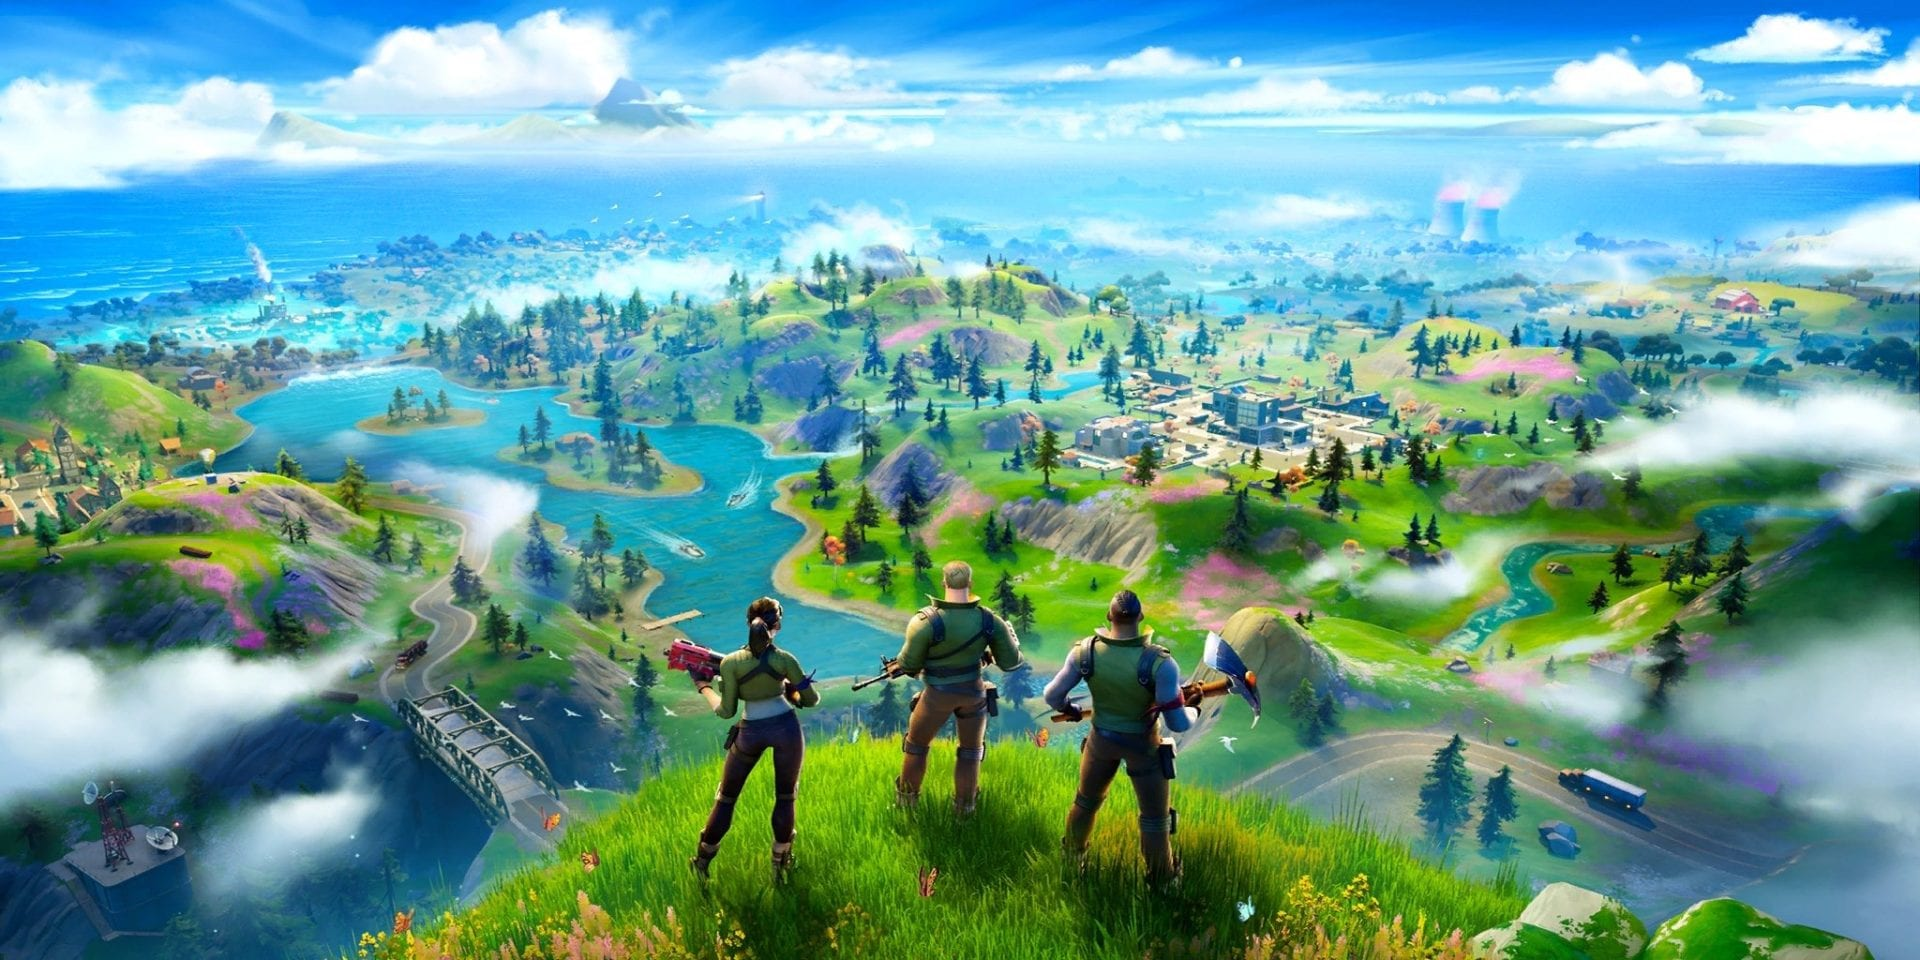 fortnite named locations quiz